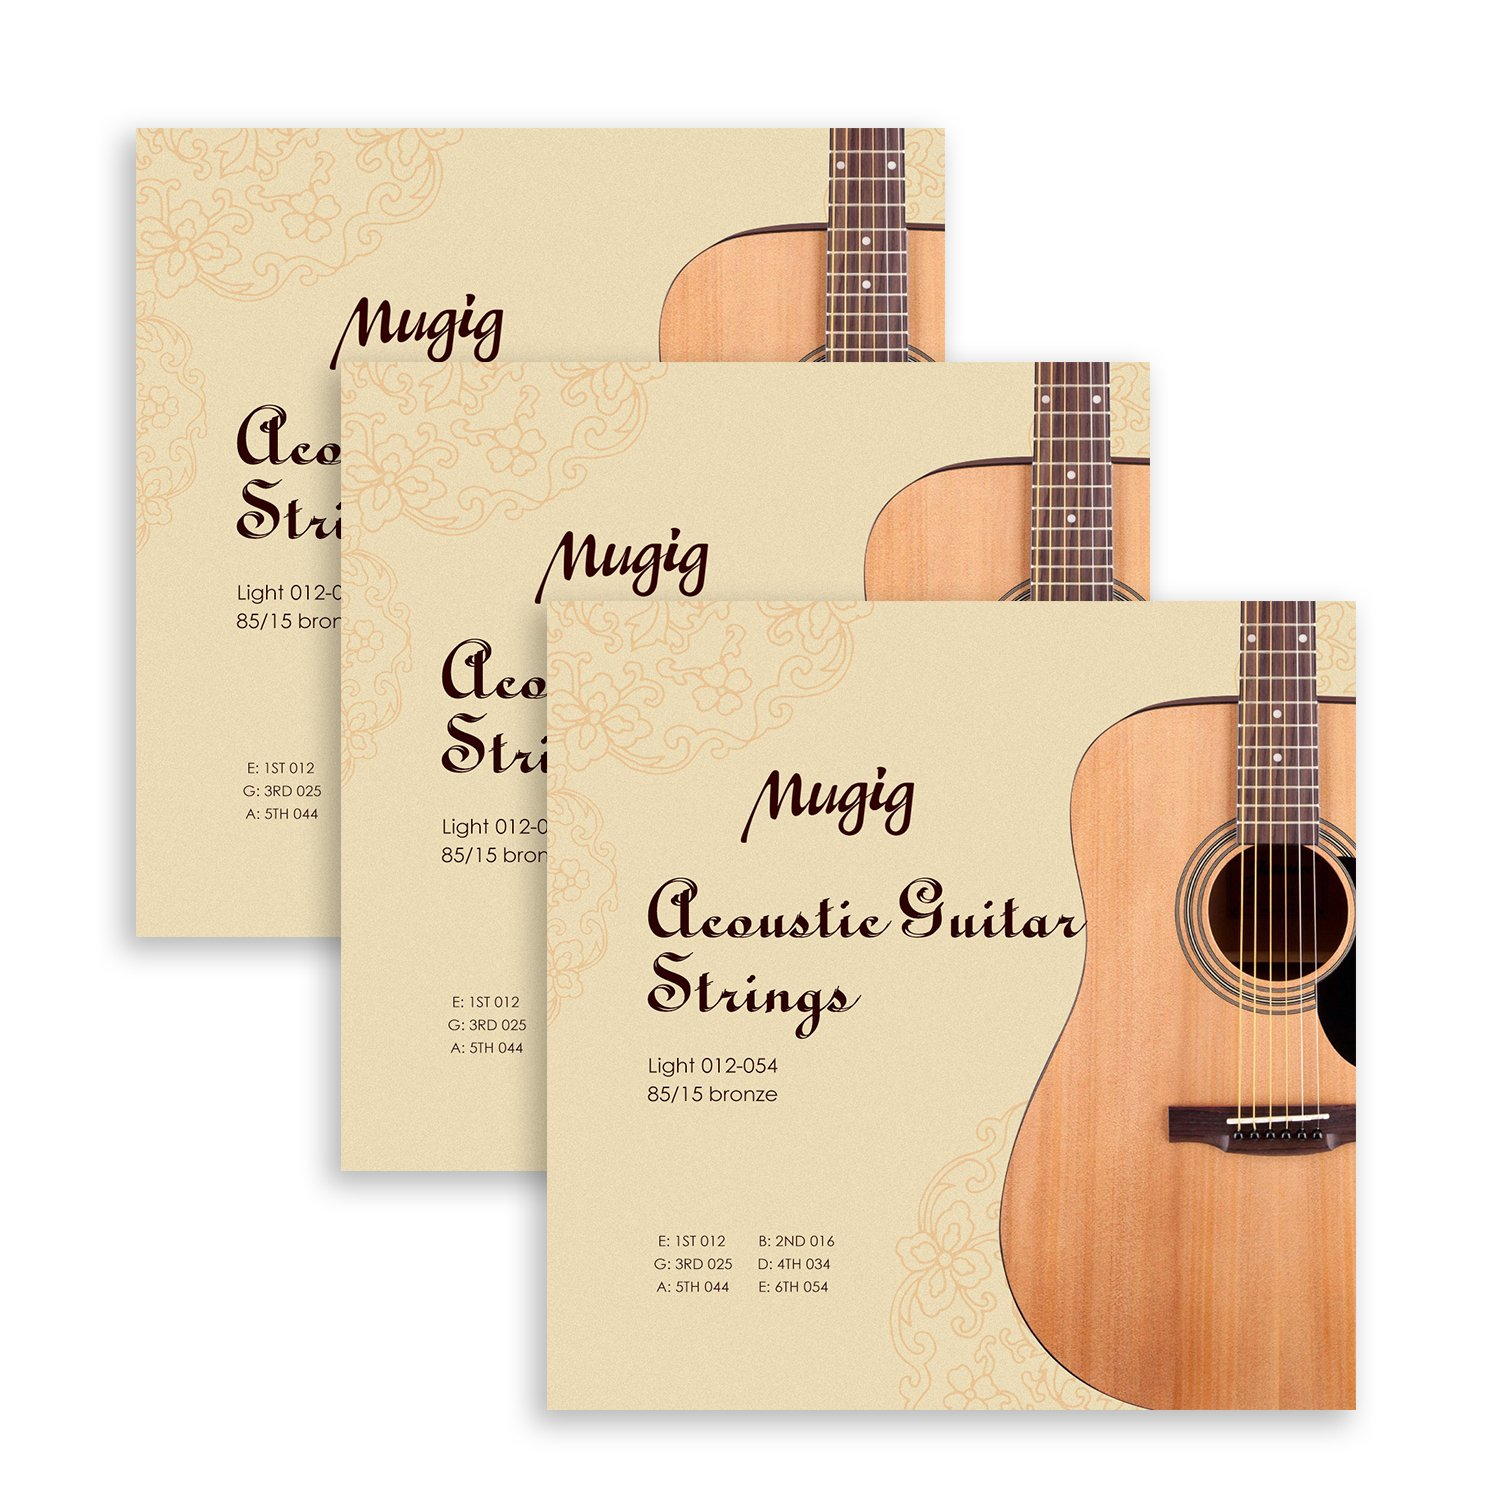 Mugig Acoustic Guitar Strings in Bronze for Acoustic Guitar Package of 3 sets 012-054